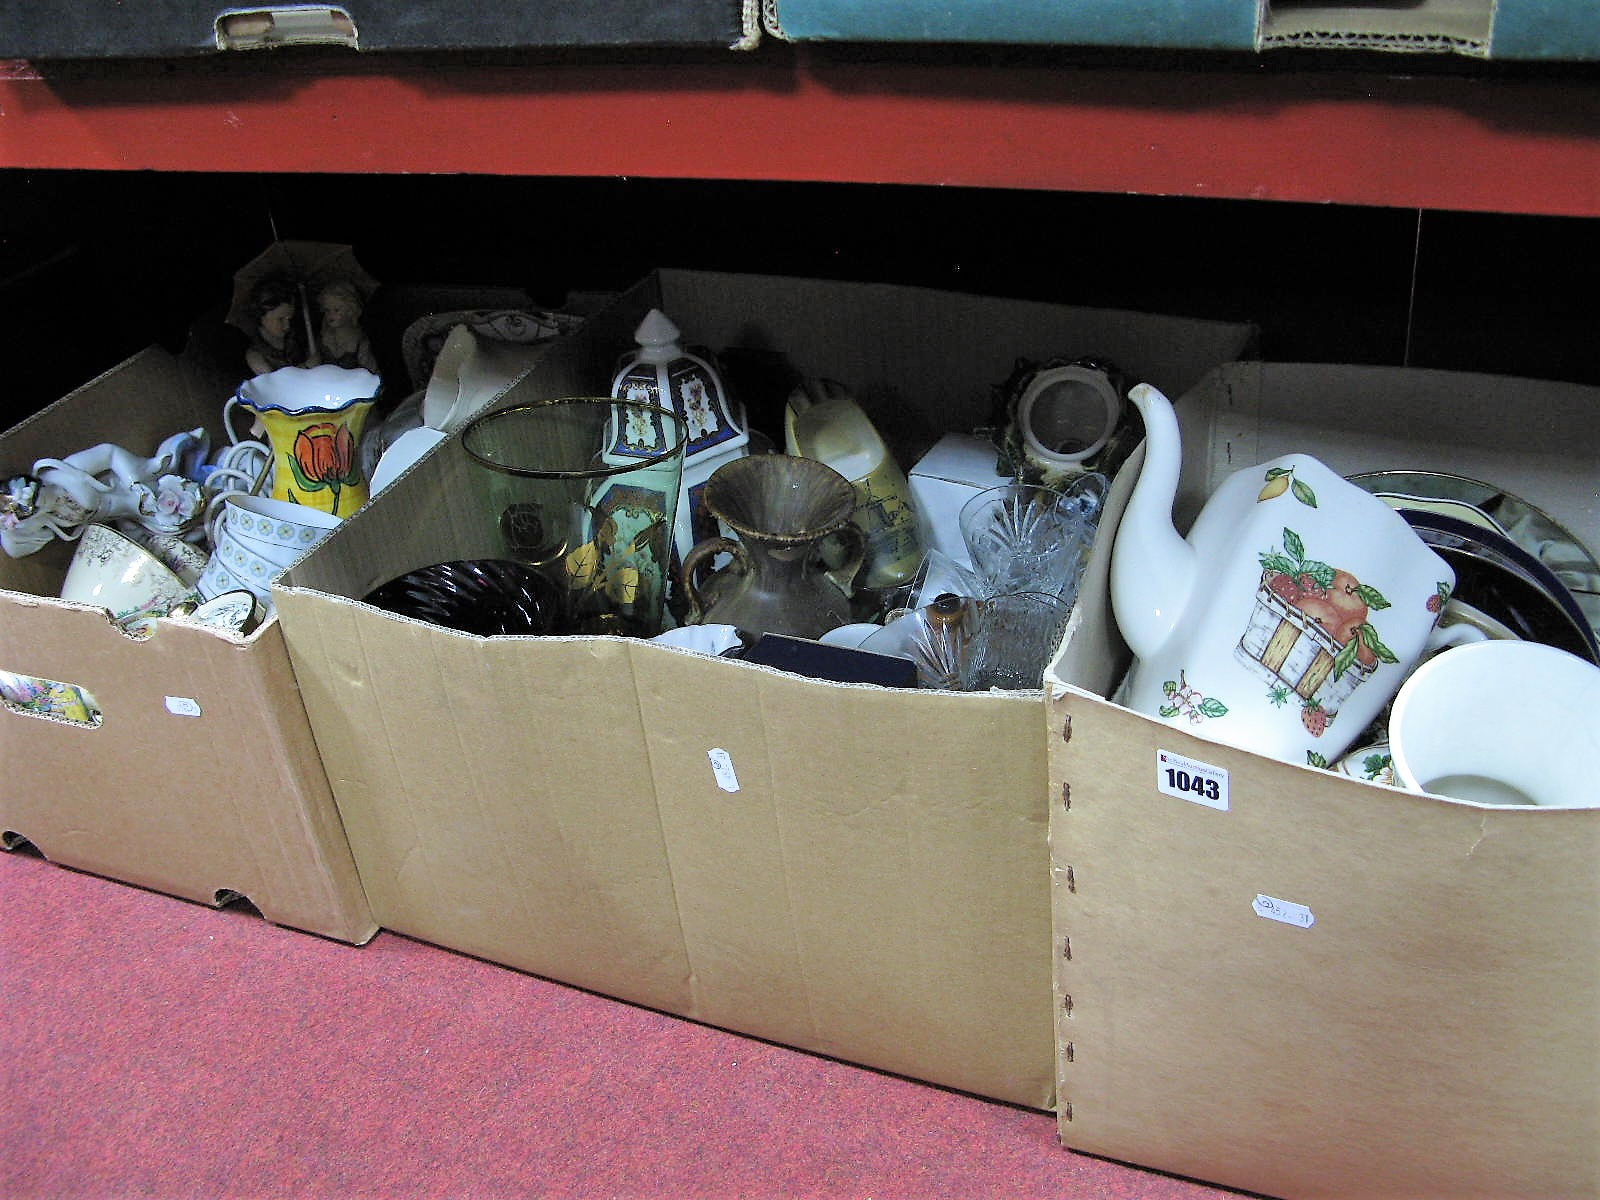 Lot 1043 - Sudlows Crinoline Lady Teapot, teaware, plates, glassware, etc:- Three Boxes